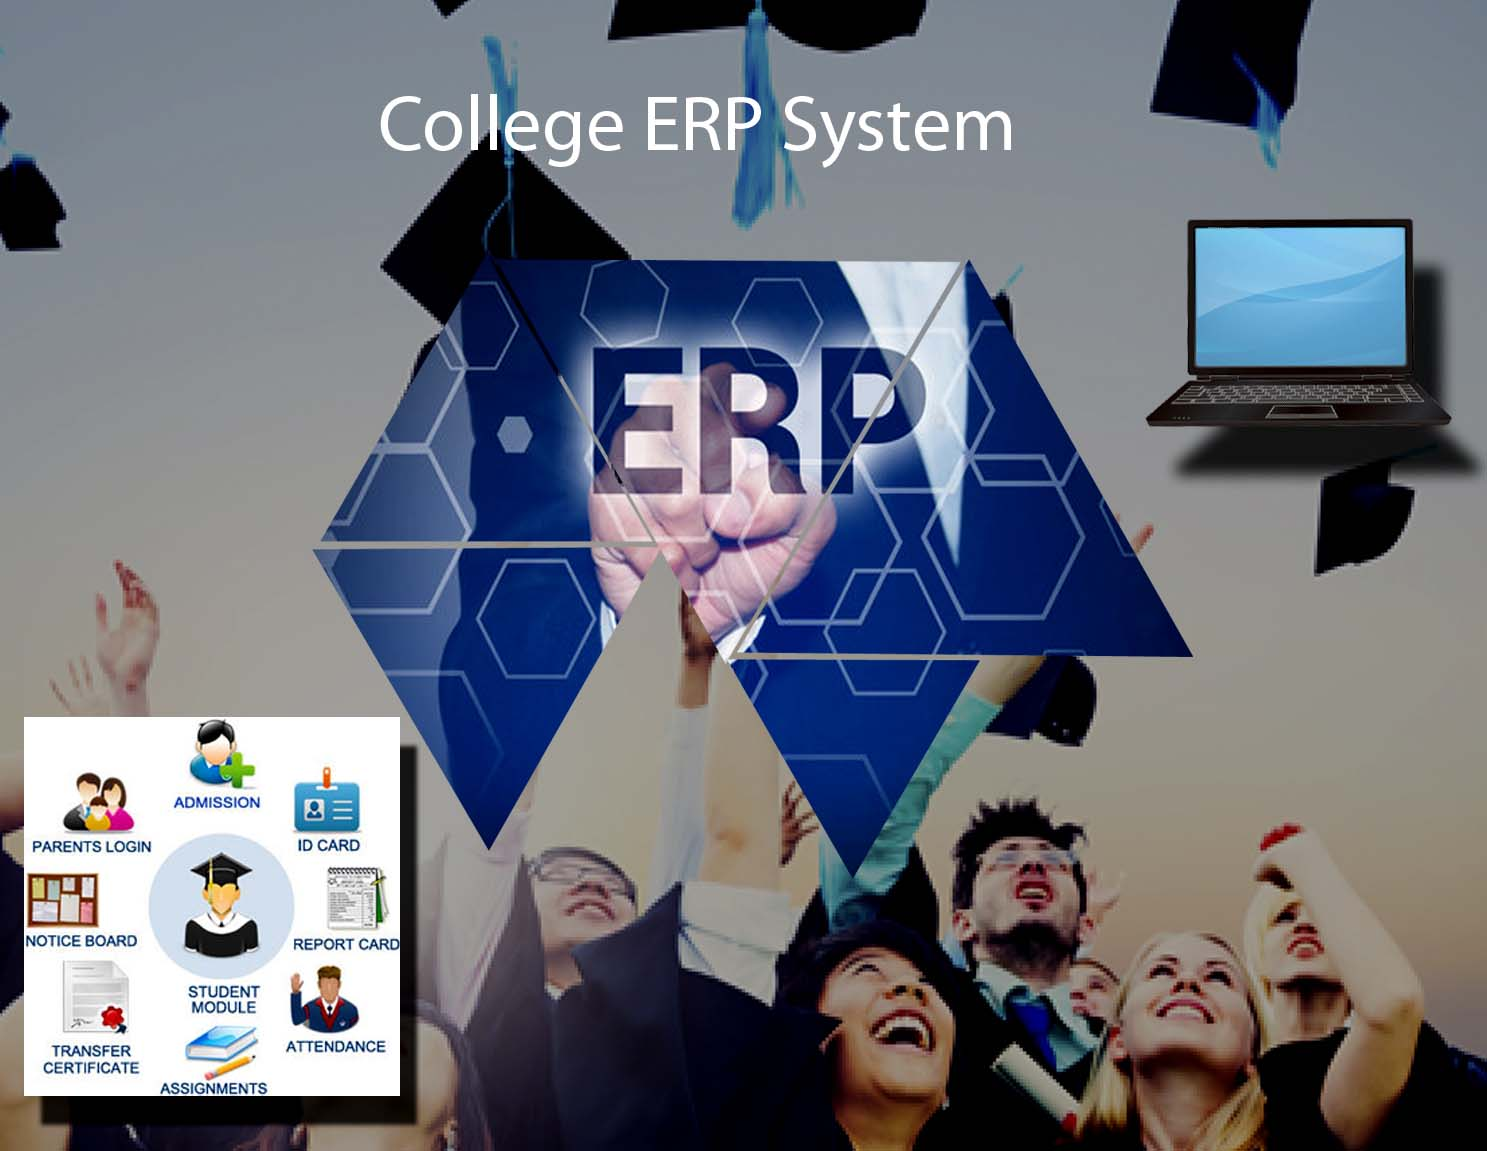 College ERP System